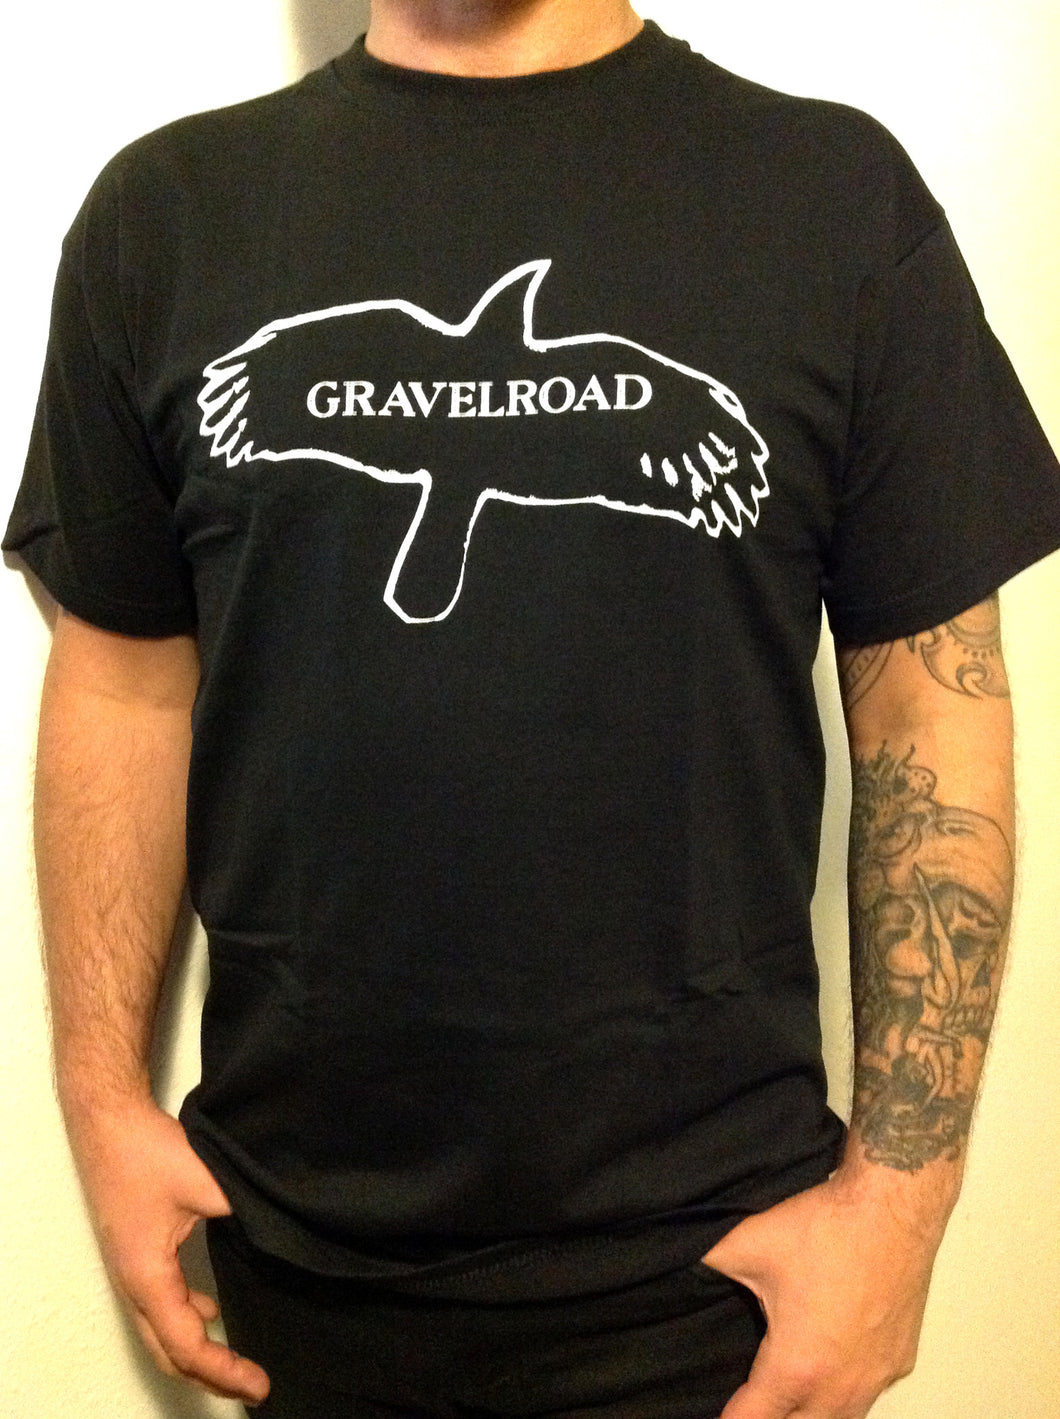 GravelRoad Black Raven mens t-shirt